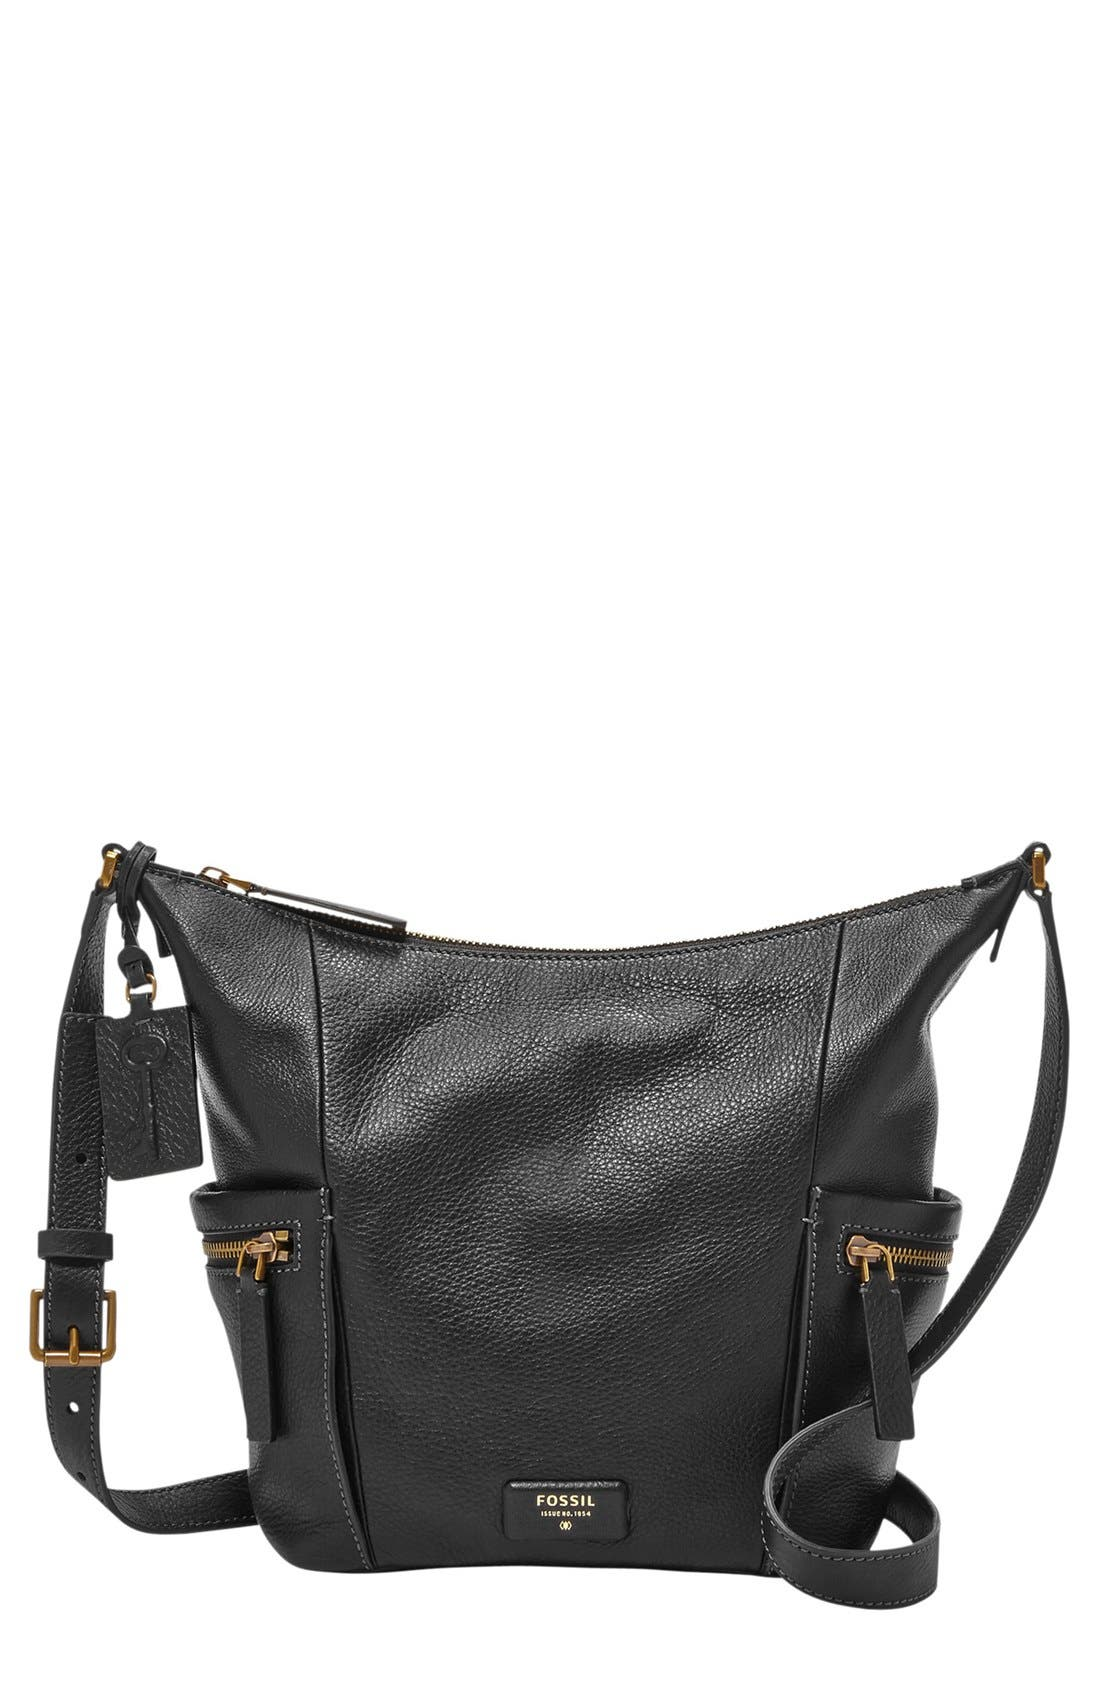 Alternate Image 1 Selected - Fossil 'Small Emerson' Hobo Bag